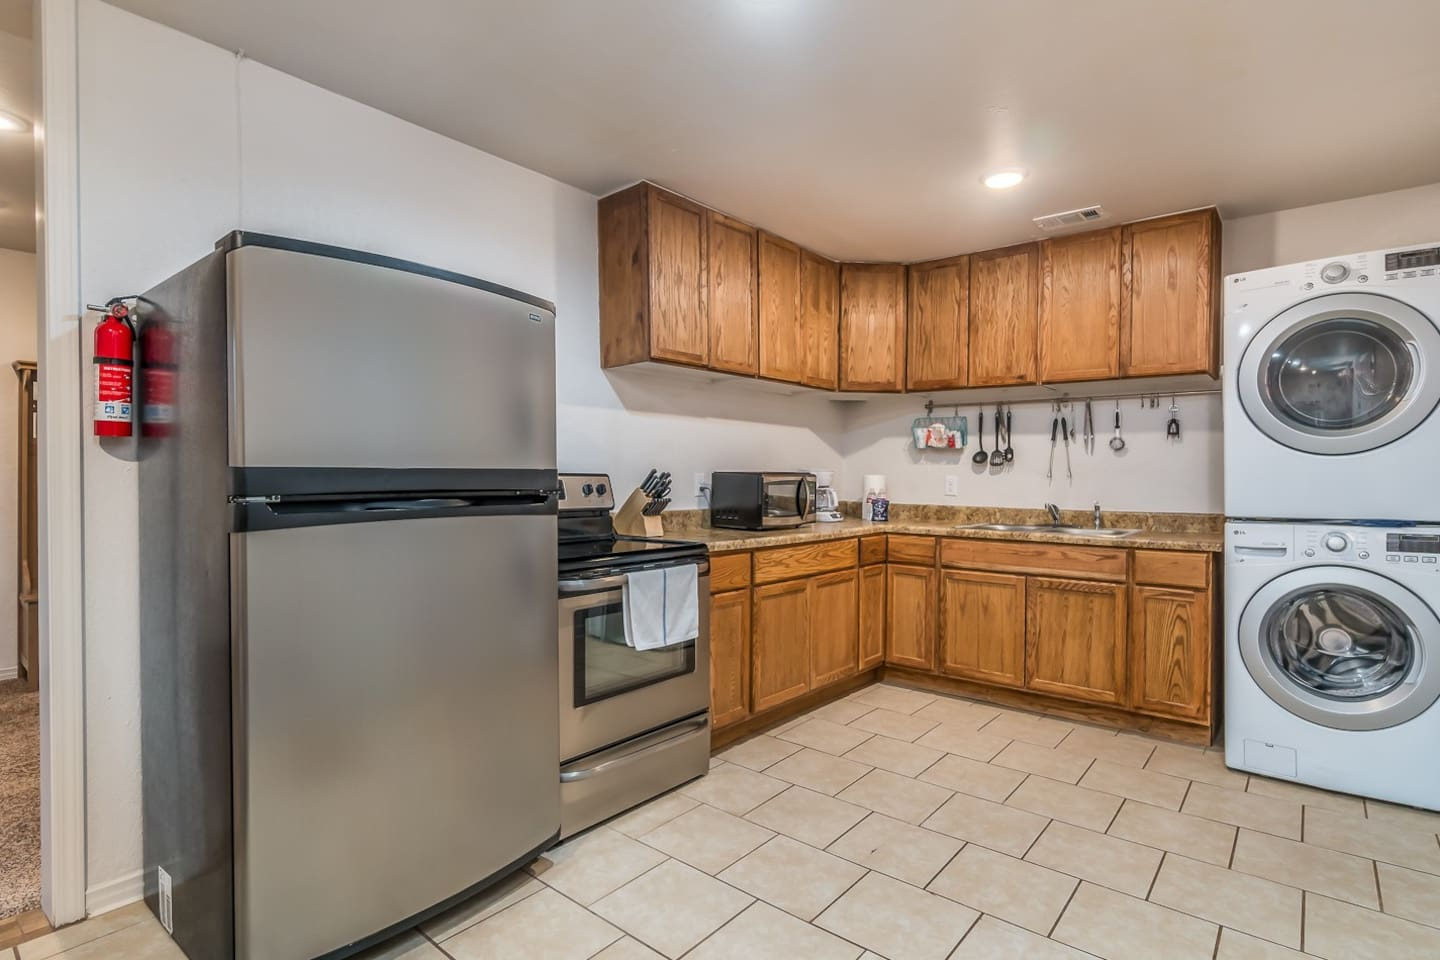 Kitchen with full size appliances and washer/dryer.